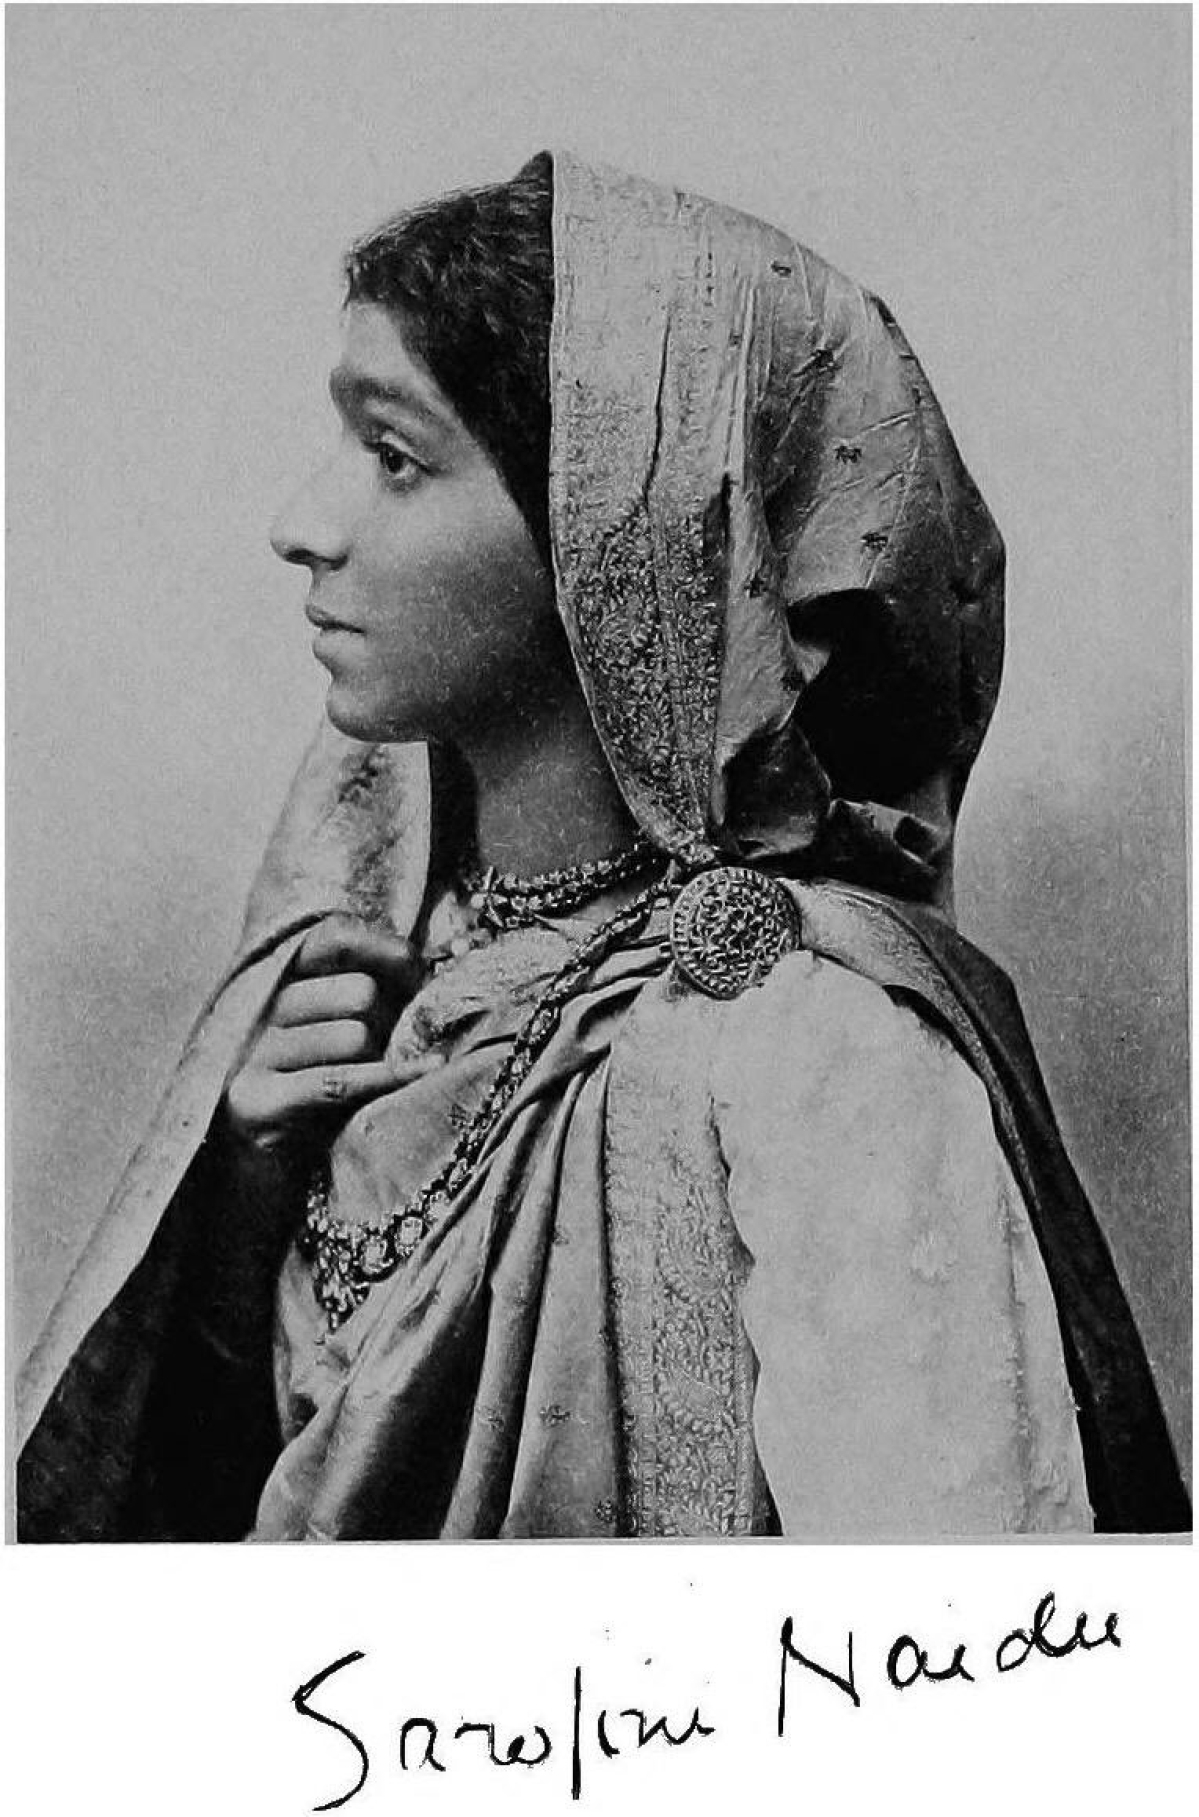 Sarojini Naidu wasn't a woman to back down from fighting for freedom, justice and empowerment in any realm.